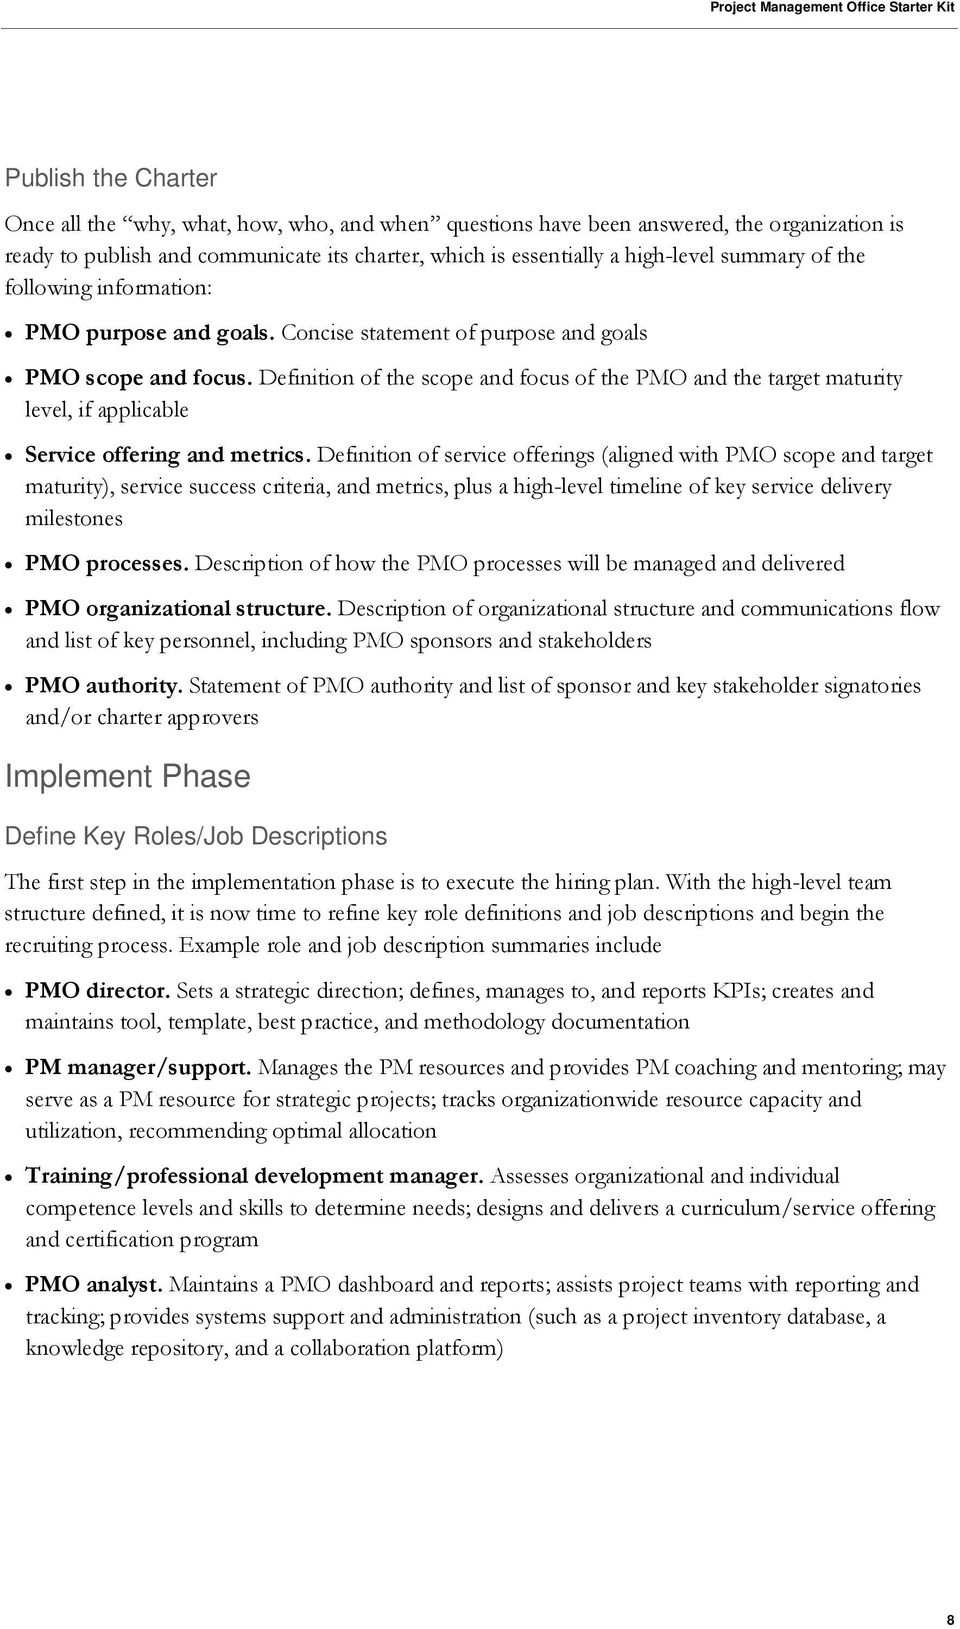 Definition Of The Scope And Focus PMO Target Maturity Level If